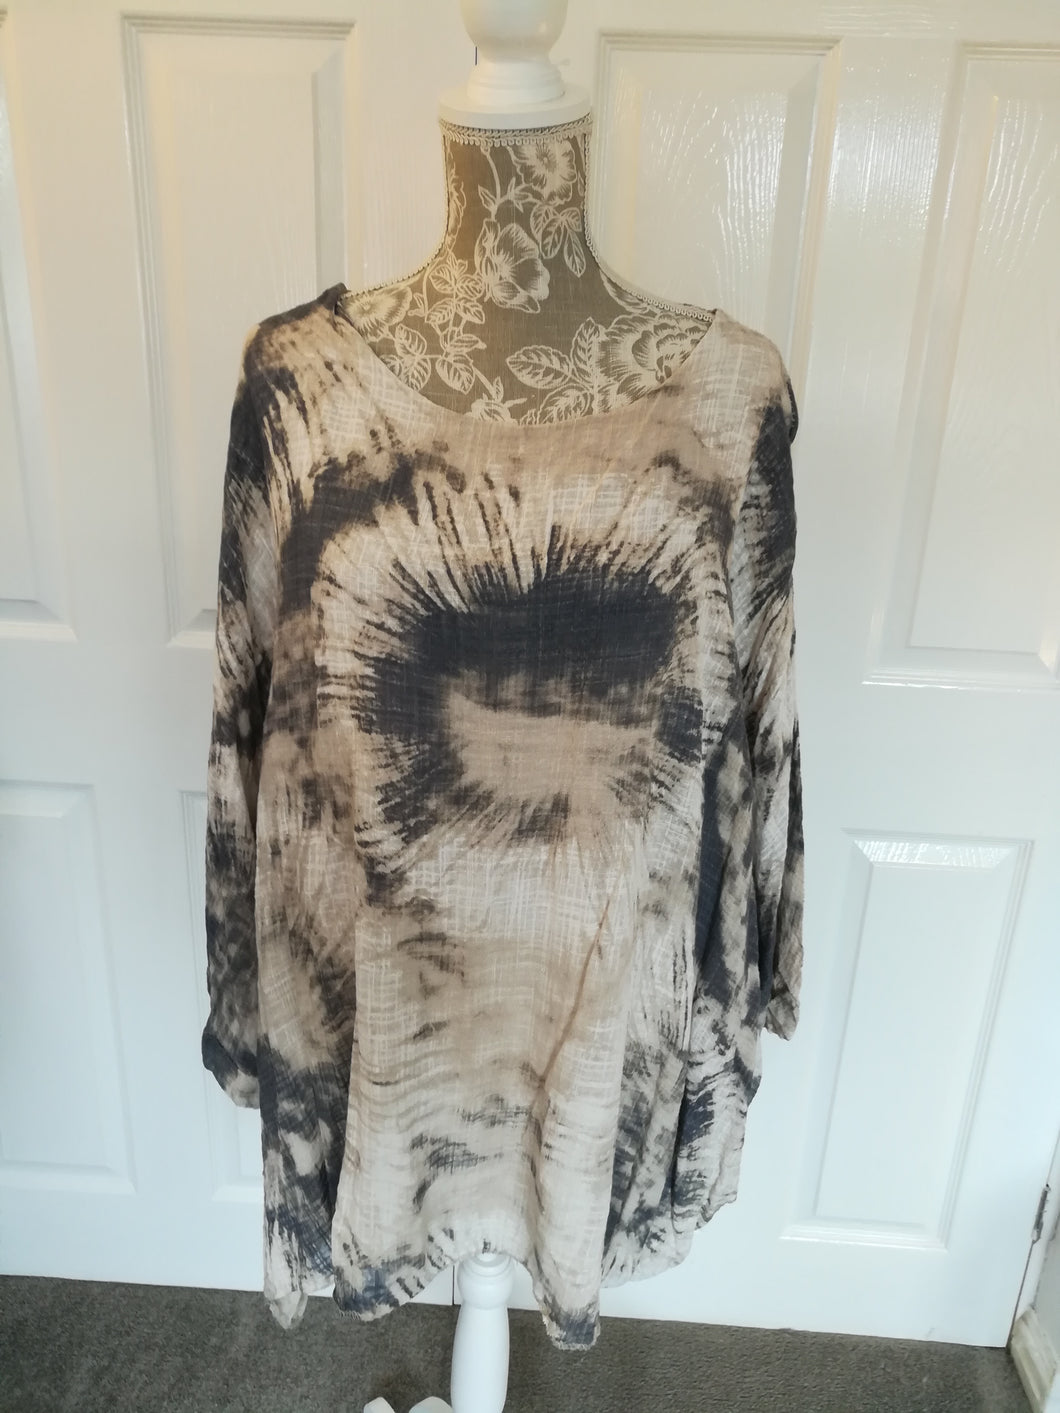 Tye Dye Top - one size 14/24 - £18